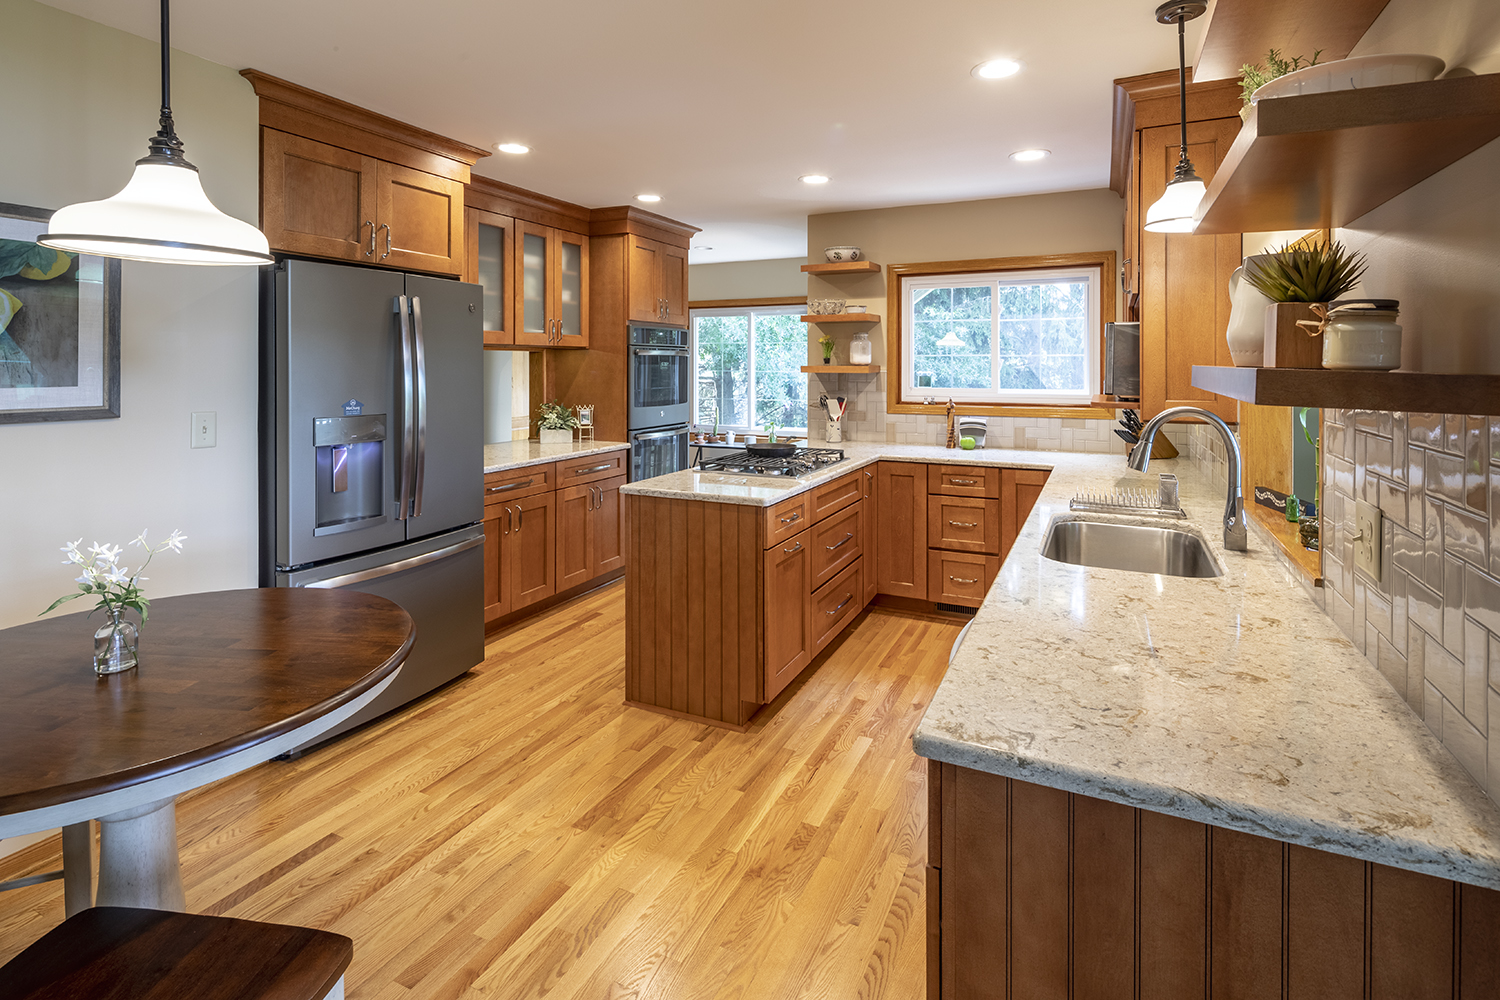 This kitchen was designed to save space, create open sight lines and bring in the nature light. This space captures access to the deck, sight lines to 2 other main living spaces, and the inclusion of a small sitting table.